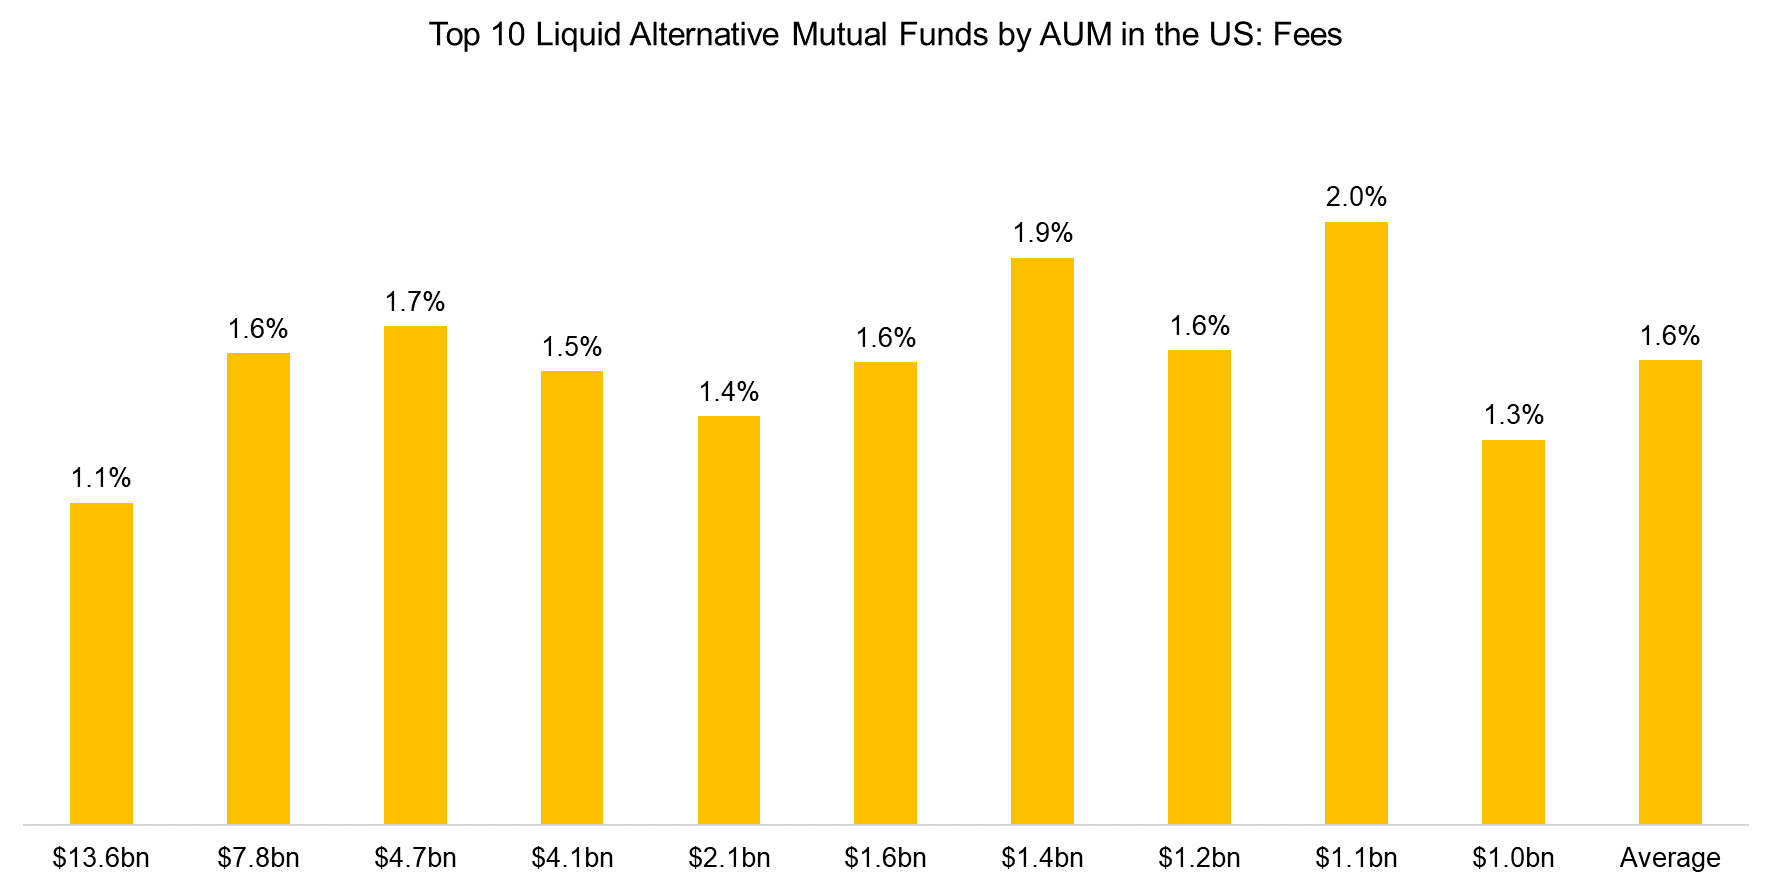 Top 10 Liquid Alternative Mutual Funds by AUM in the US Fees